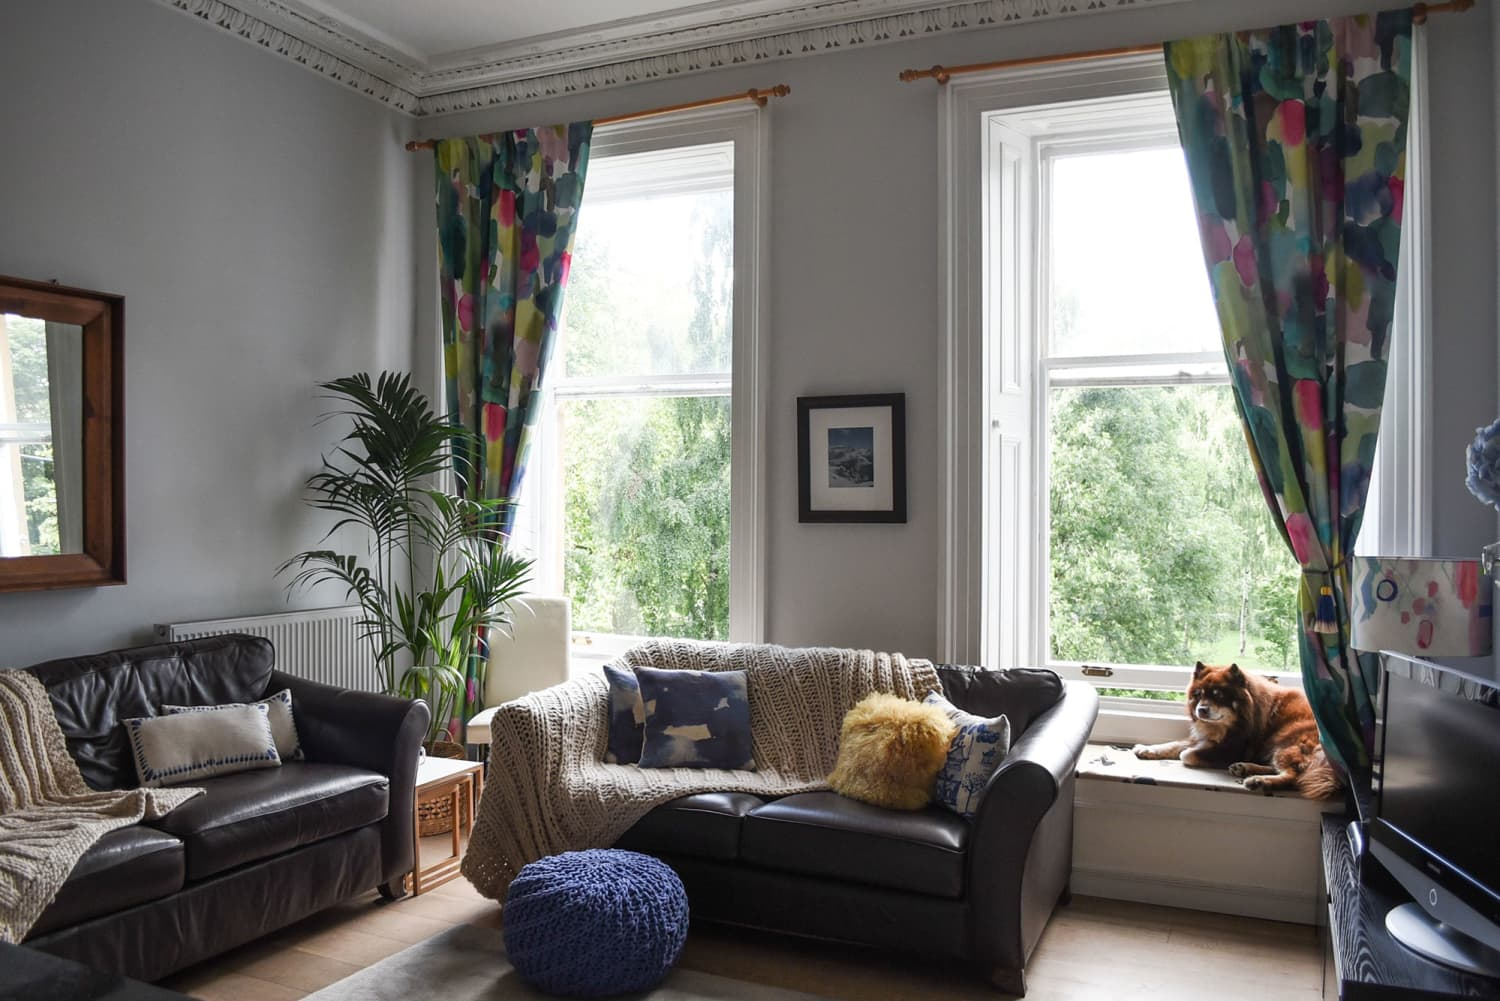 This Gorgeous Glasgow Home Features Bold Textiles, IKEA Hacks, and a DIY Budget Kitchen Makeover